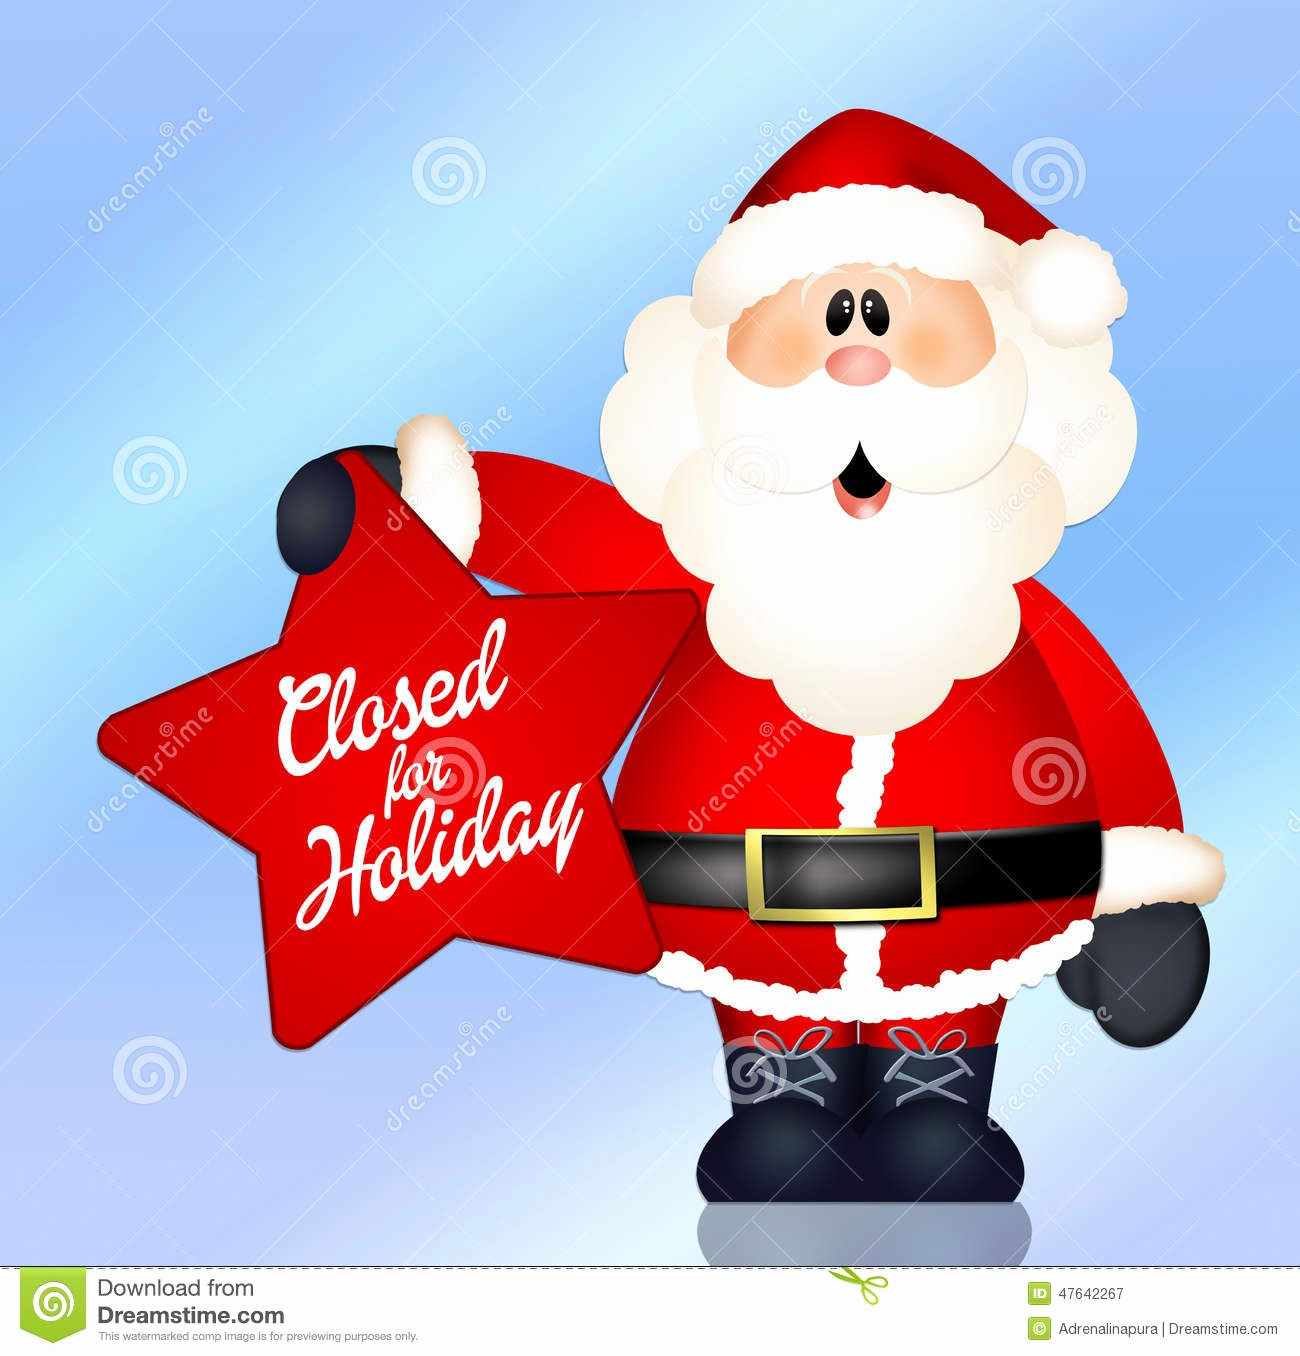 Closed for the Holidays Sign Luxury Closed for Holidays Stock Illustration Image Of Sale